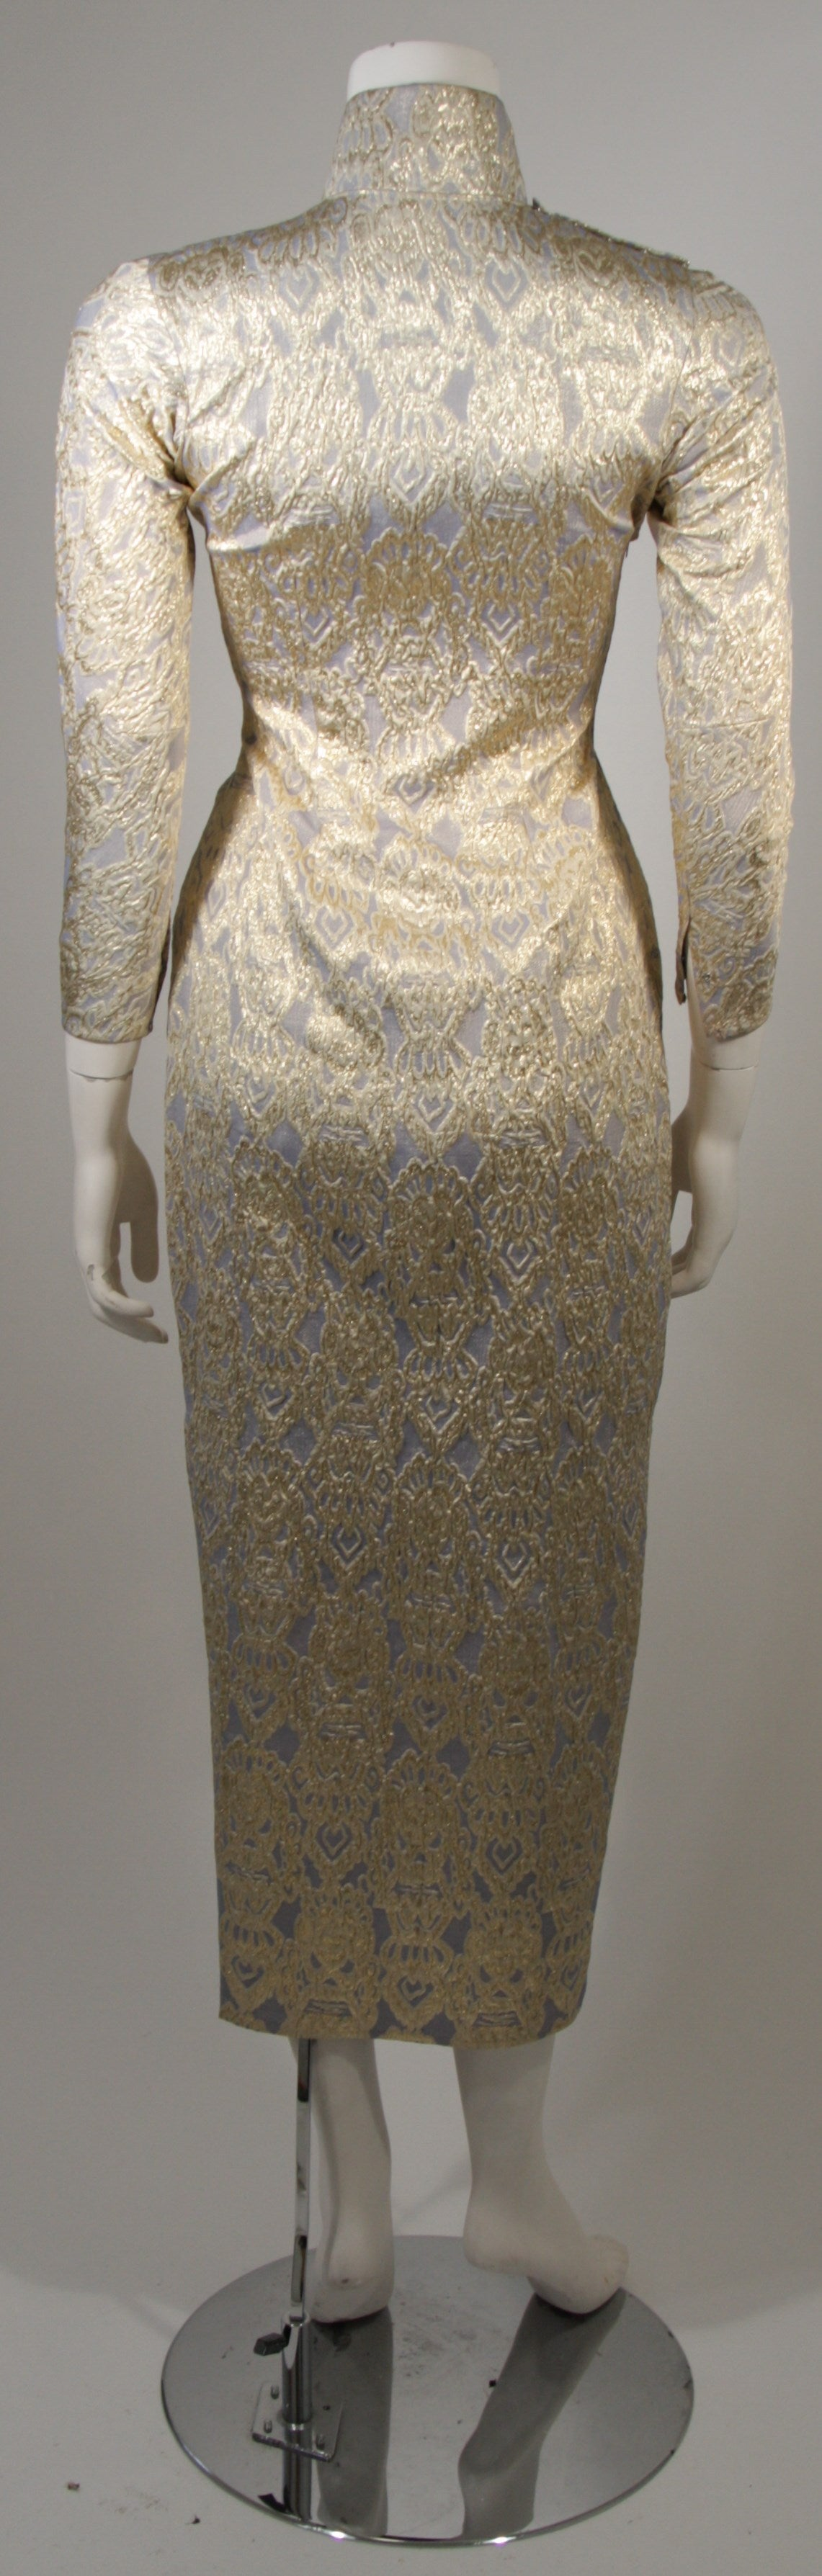 Oriental Inspired Pale Blue & Gold Silk Brocade Cheongsam Dress Sz 0-2 For Sale 5